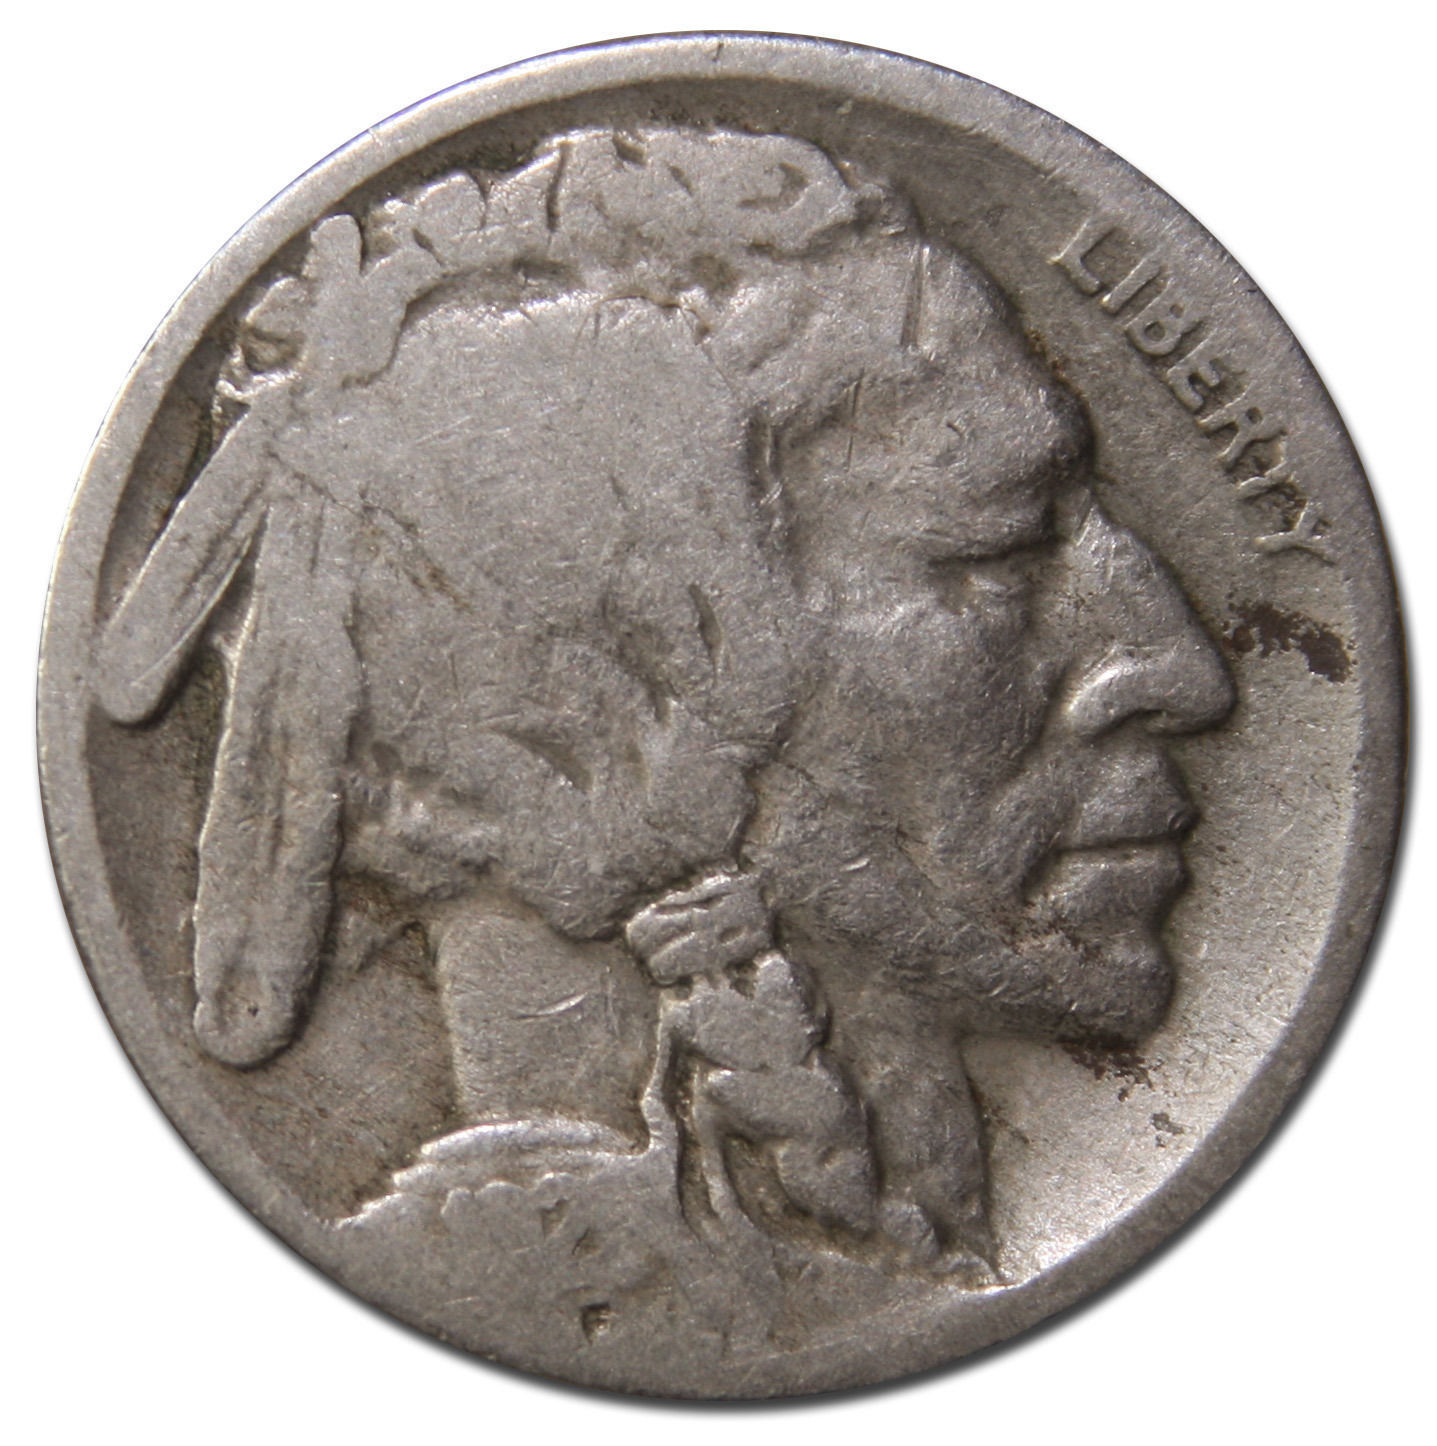 1921S Buffalo Nickel 5¢ Coin Lot # MZ 3708